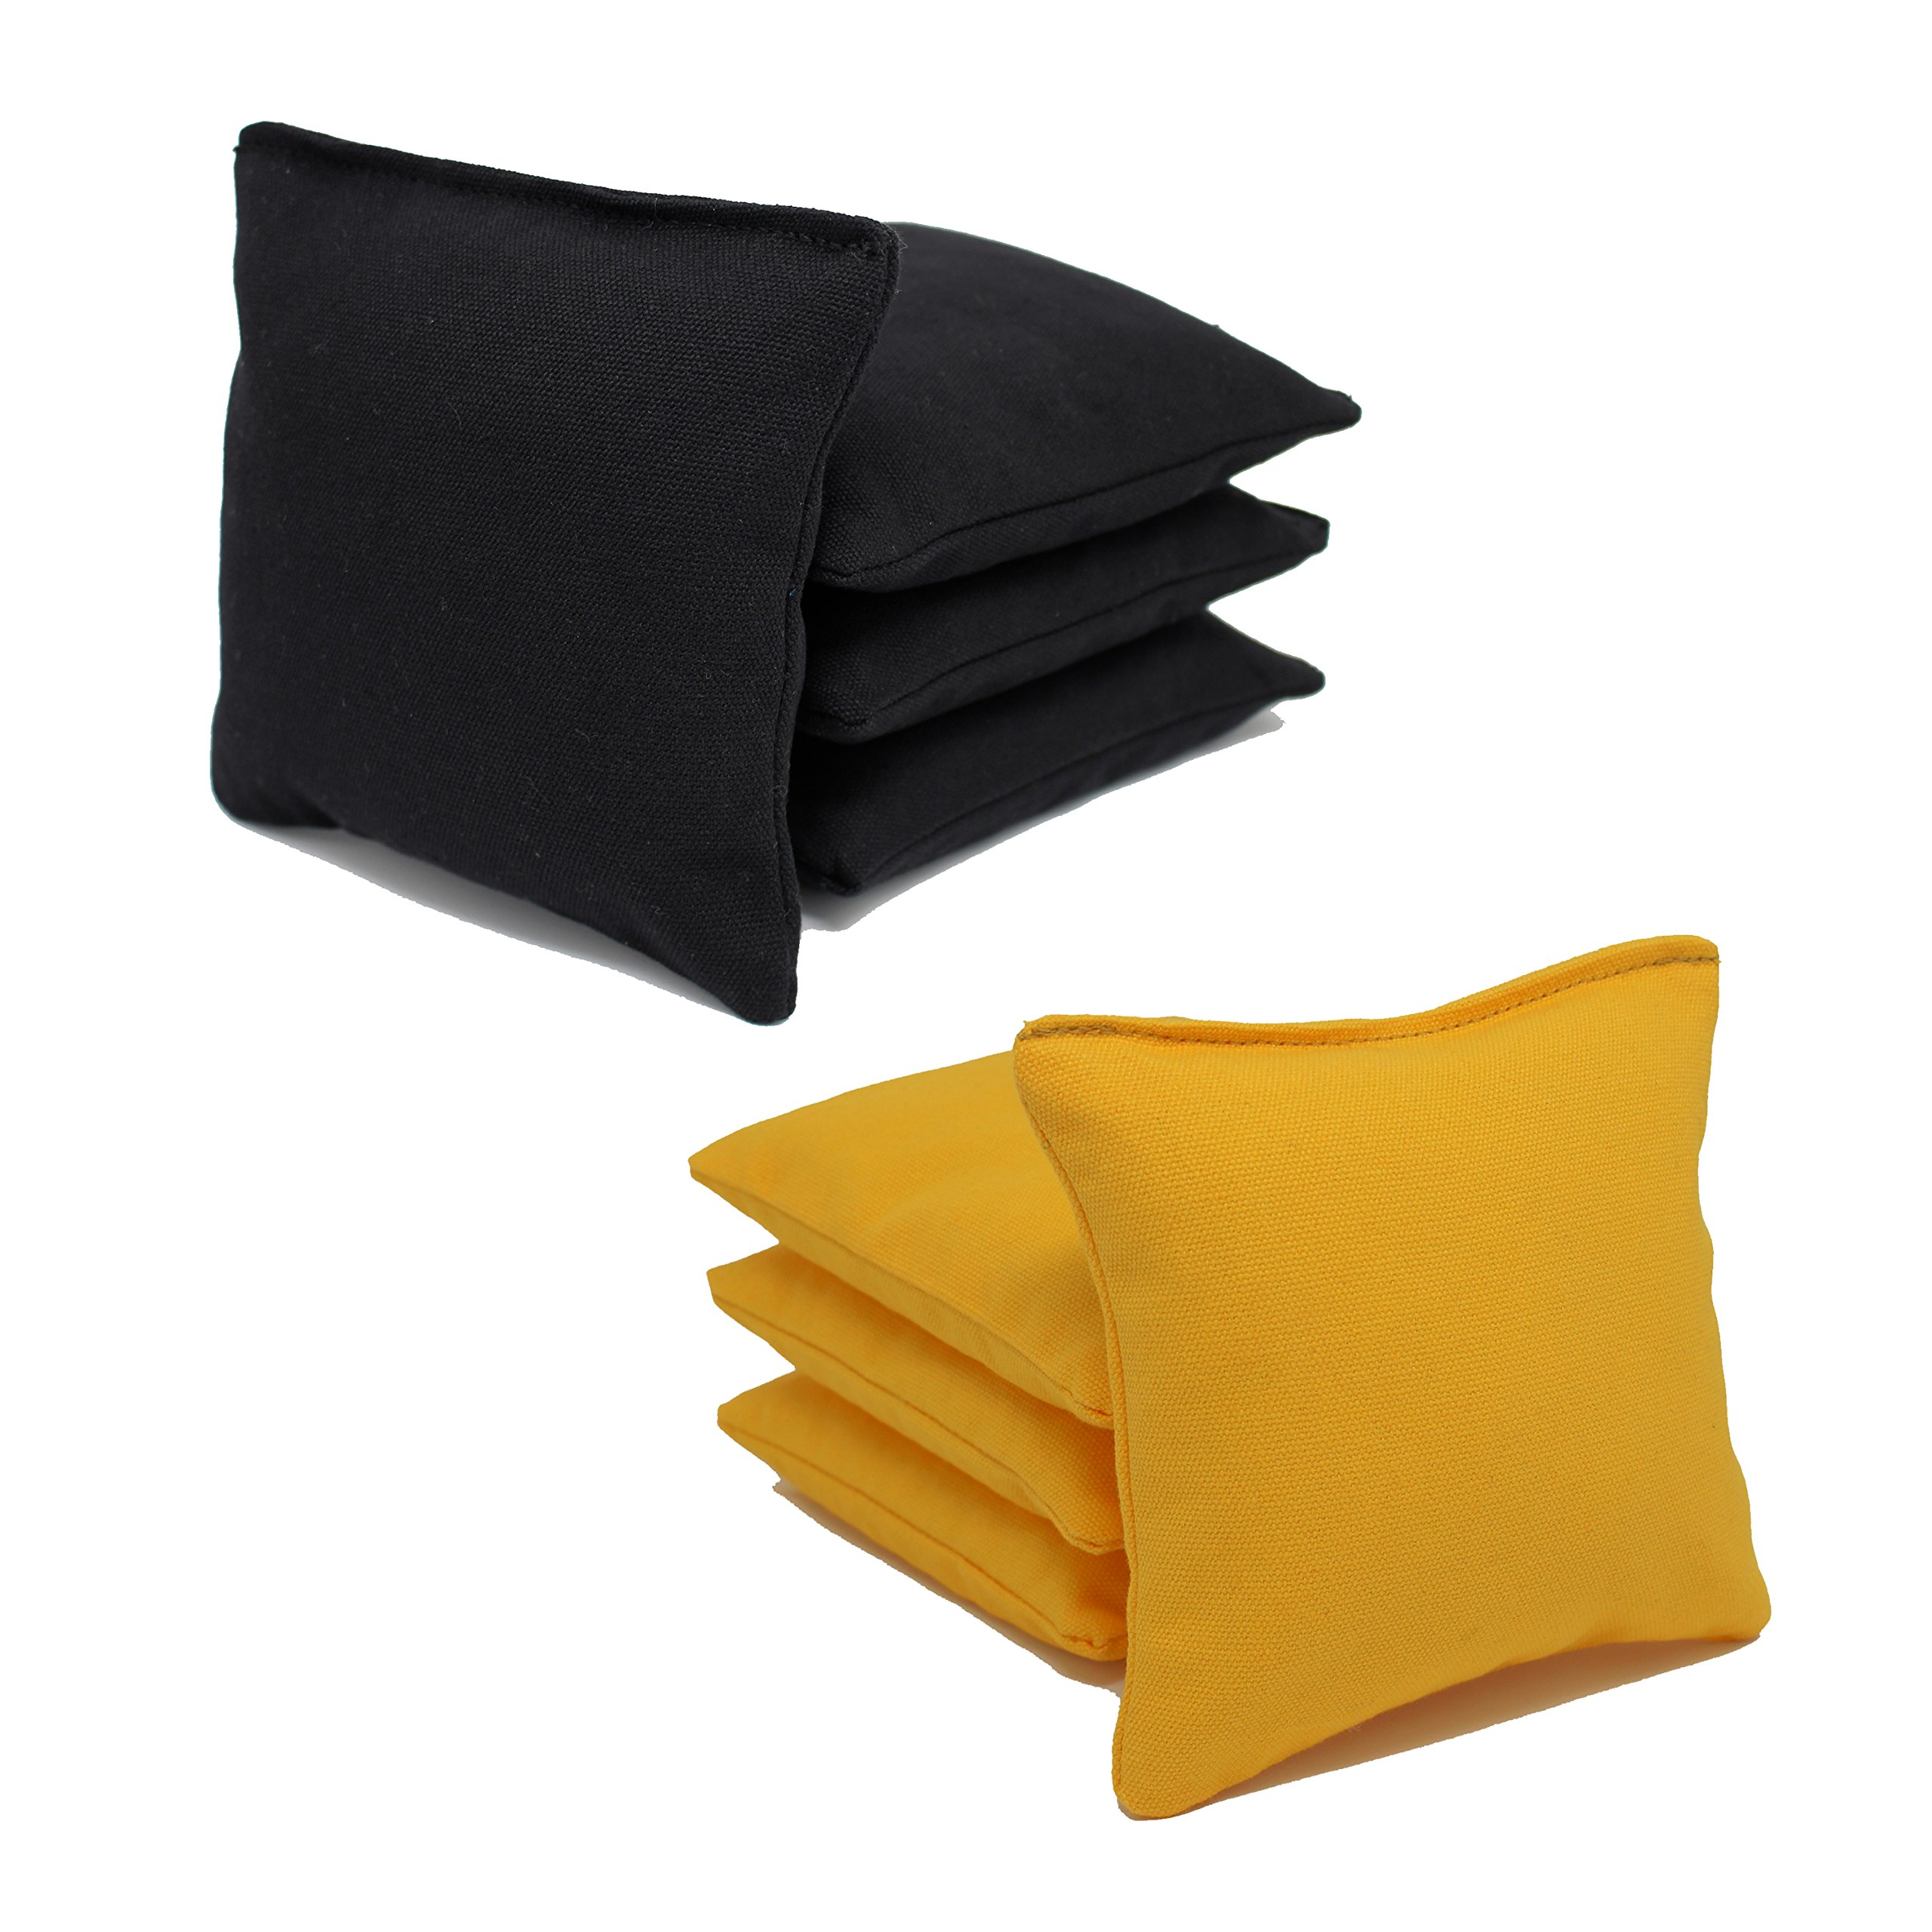 Free Donkey Sports ACA Regulation Cornhole Bags (Set of 8) (Black and Yellow) 25+ Colors to Choose from.